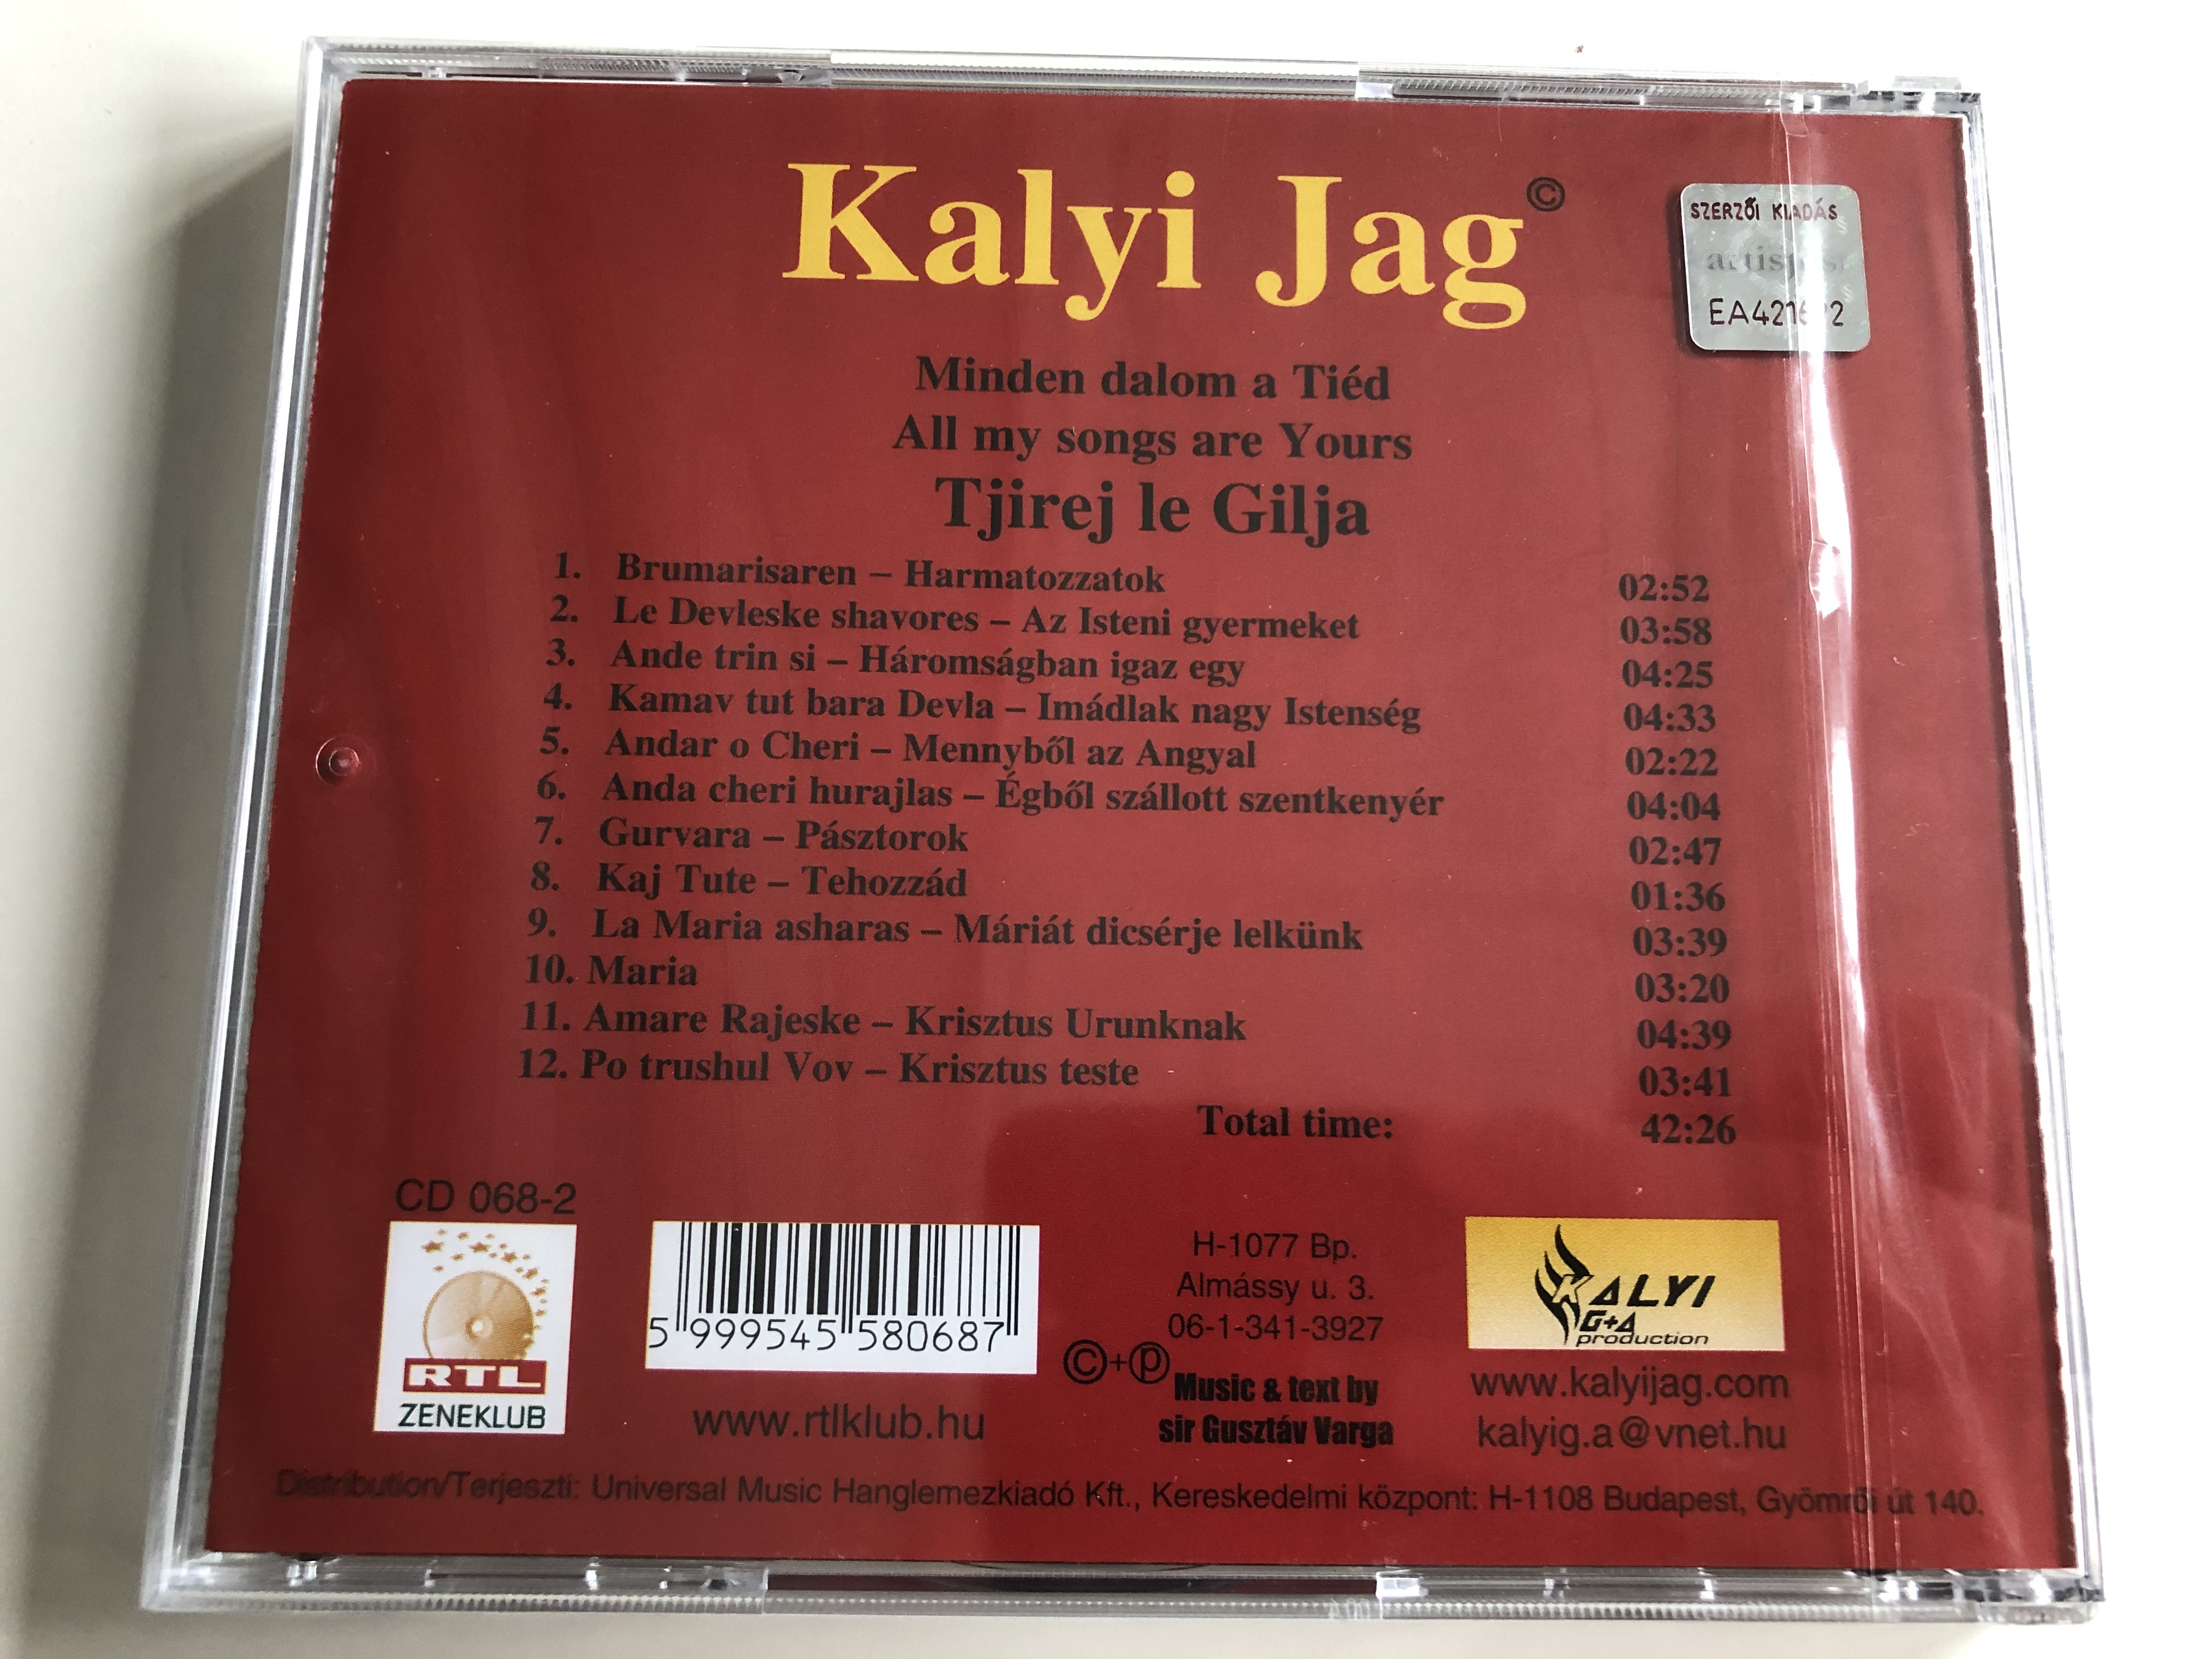 kalyi-jag-minden-dalom-a-ti-d-all-my-songs-are-yours-tjirej-le-gilja-audio-cd-068-2-music-text-by-sir-guszt-v-varga-2-.jpg